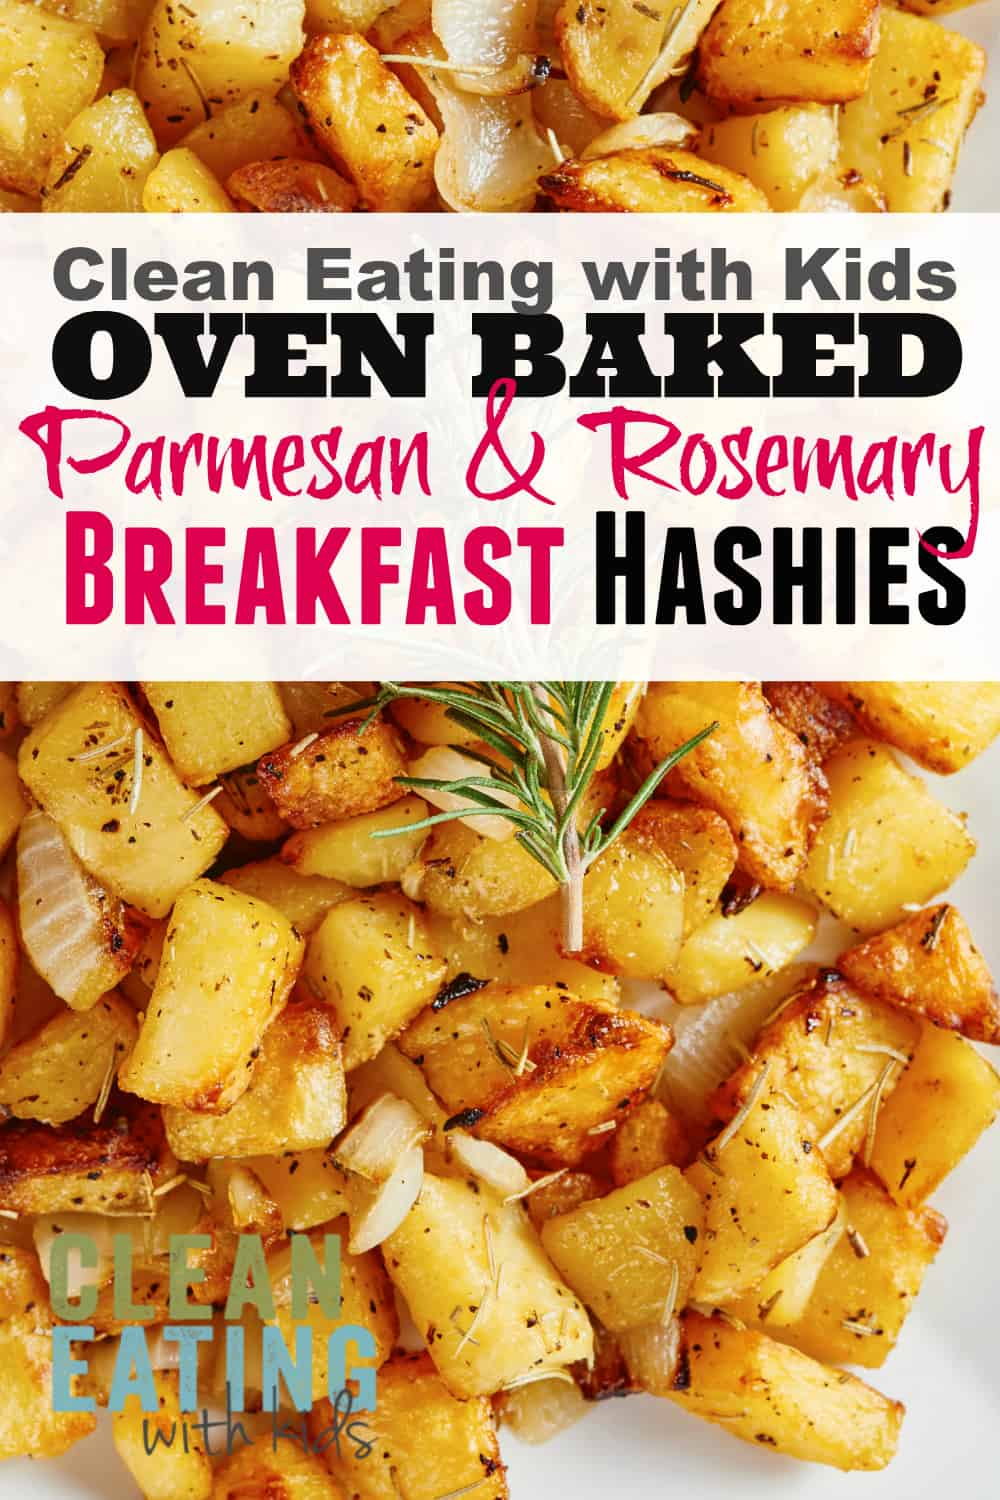 I LOVE these Clean Eating Breakfast Hashies. We make these instead of toast on our Sunday morning breakfast fry up. The Kids go crazy for them!